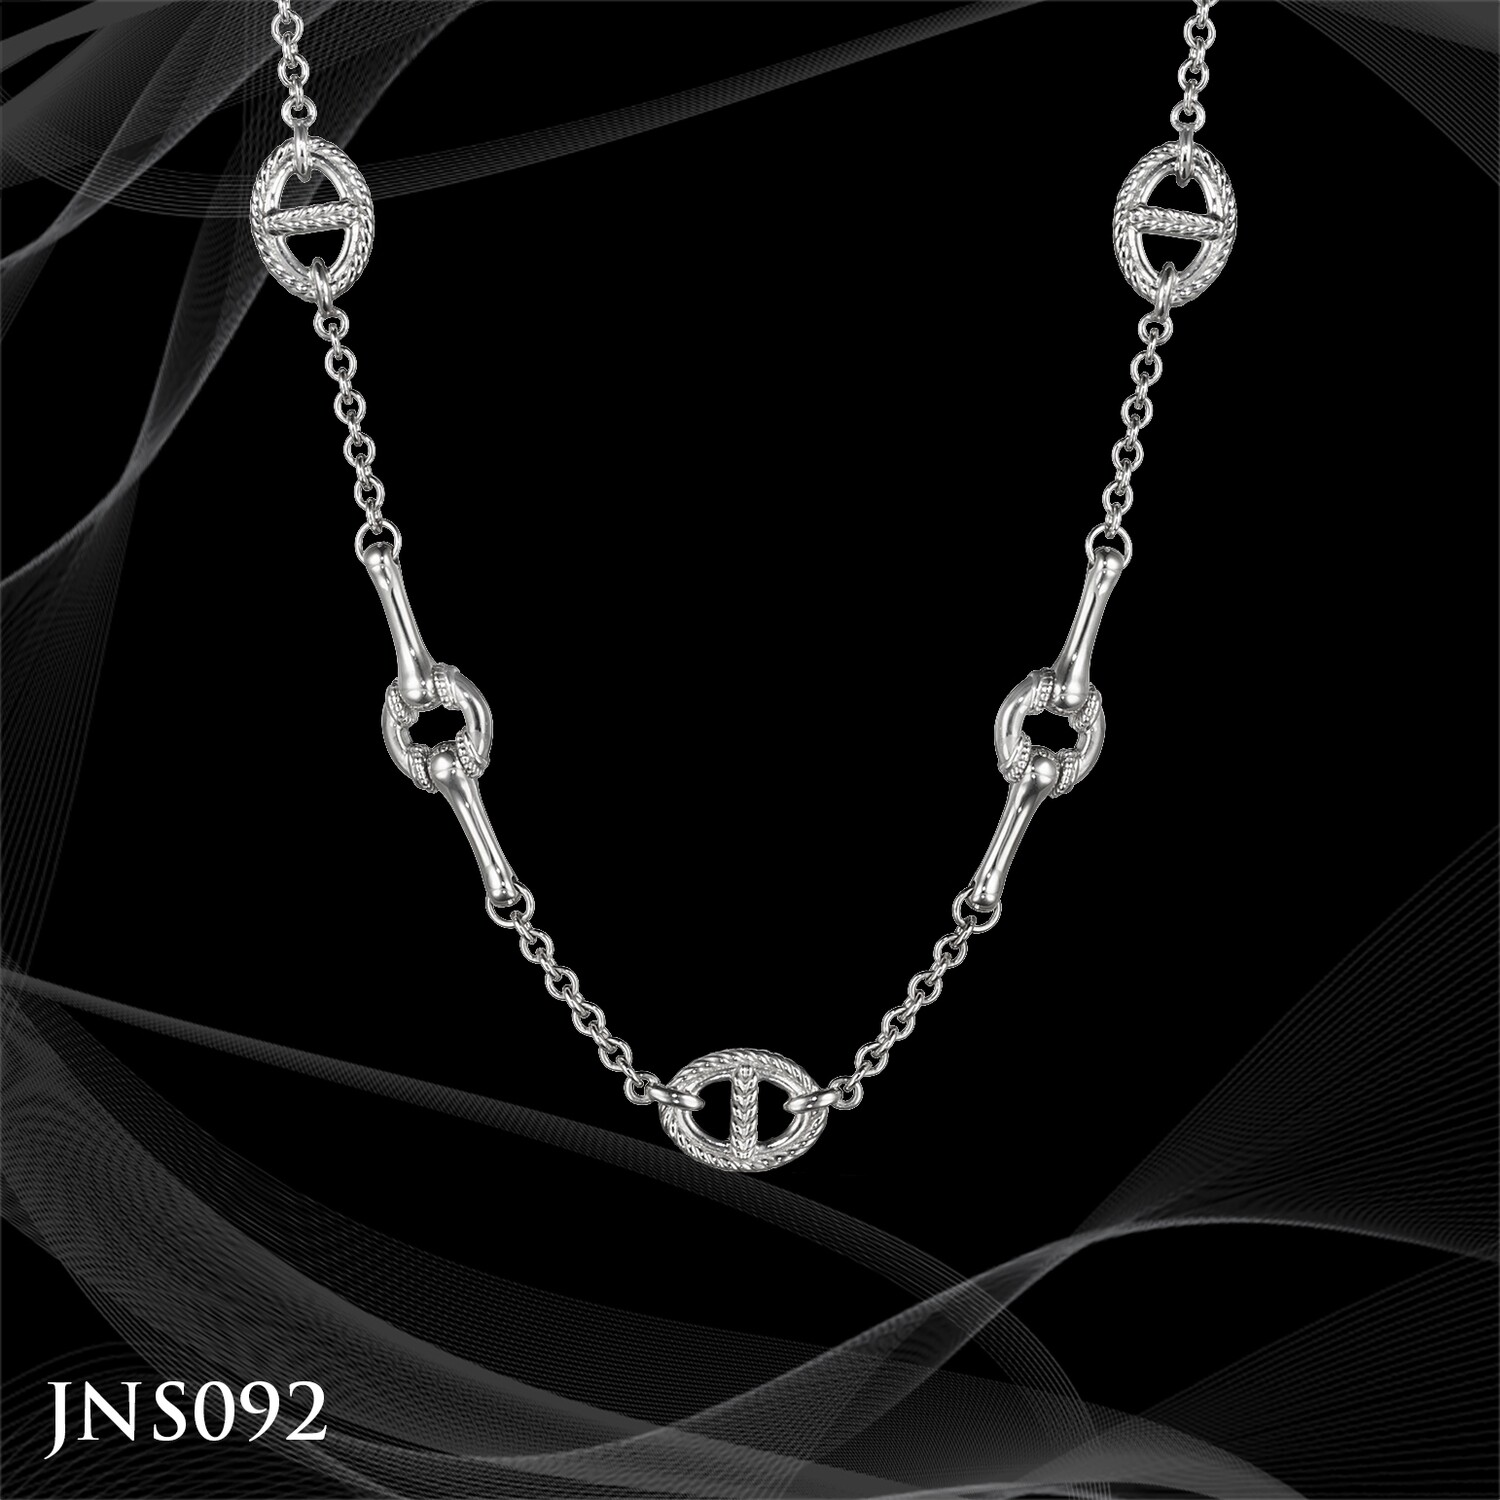 Judtih Ripka Sterling Silver Multi Link Station Necklace